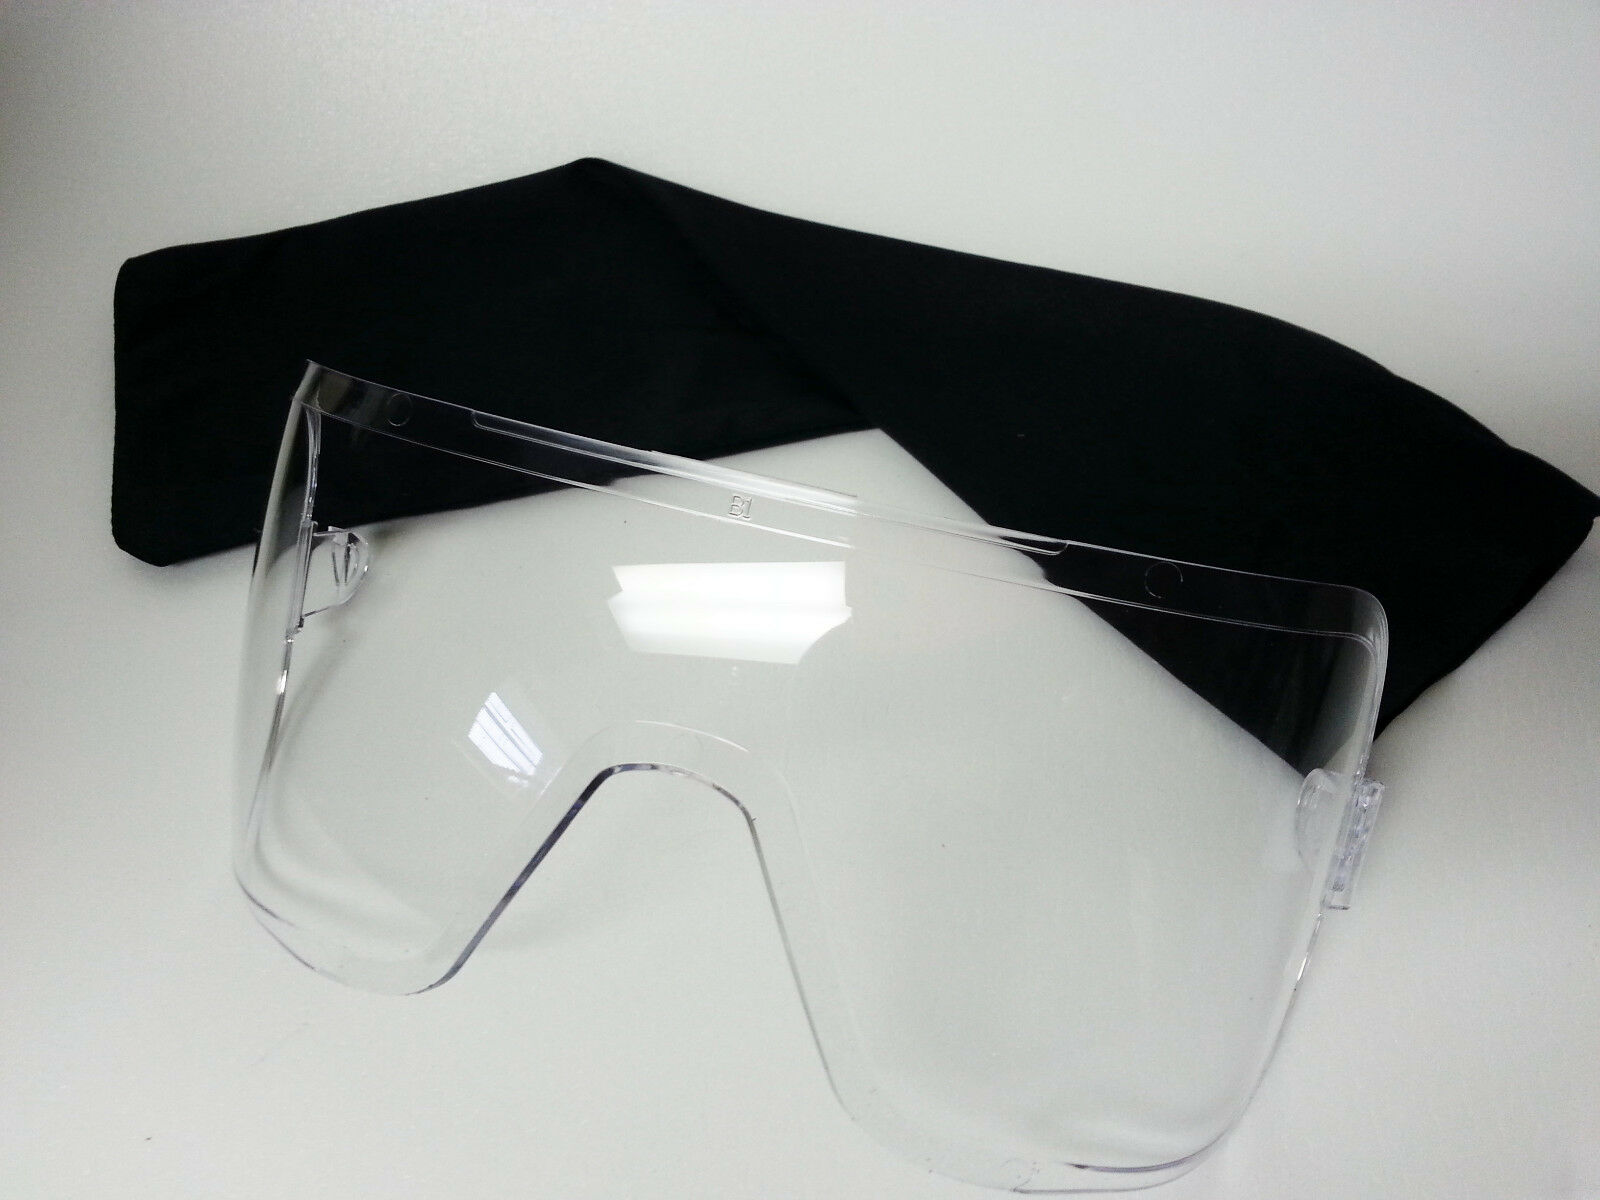 Avon Clear Outsert Assembly 70501-156 Fits C50 FM50 FM53 Gas Mask Lens